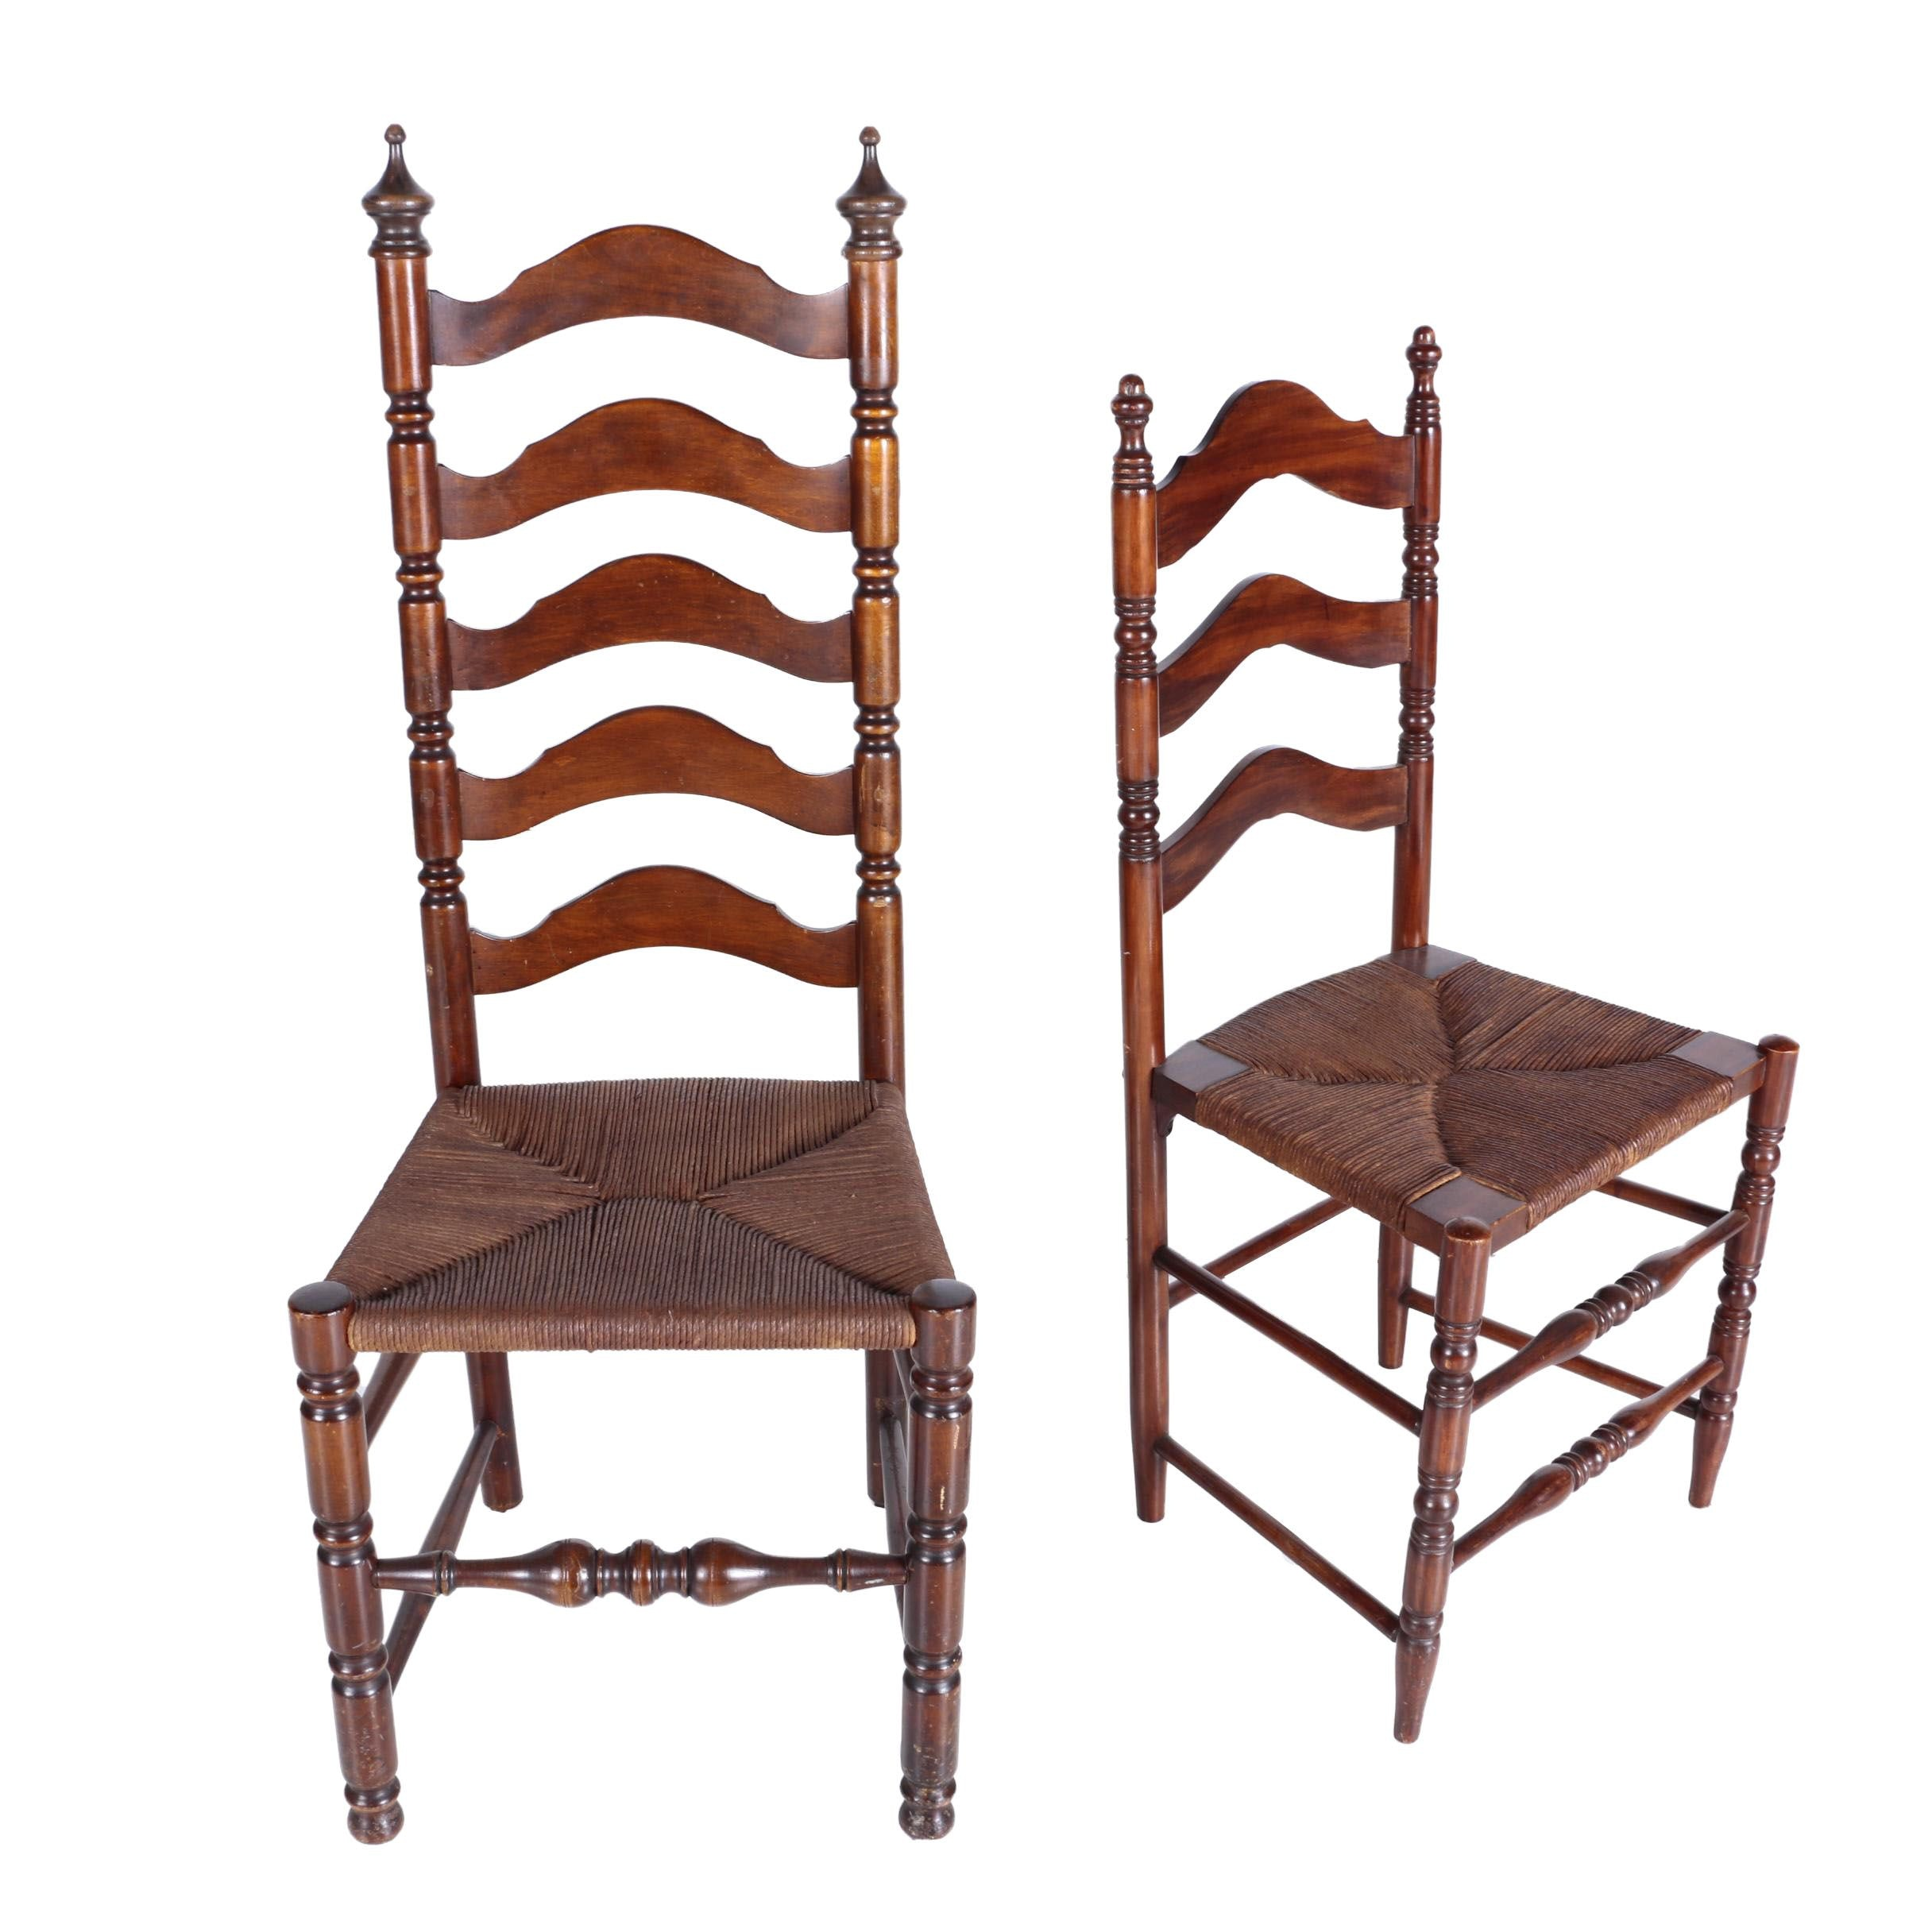 Two Ladderback Chairs